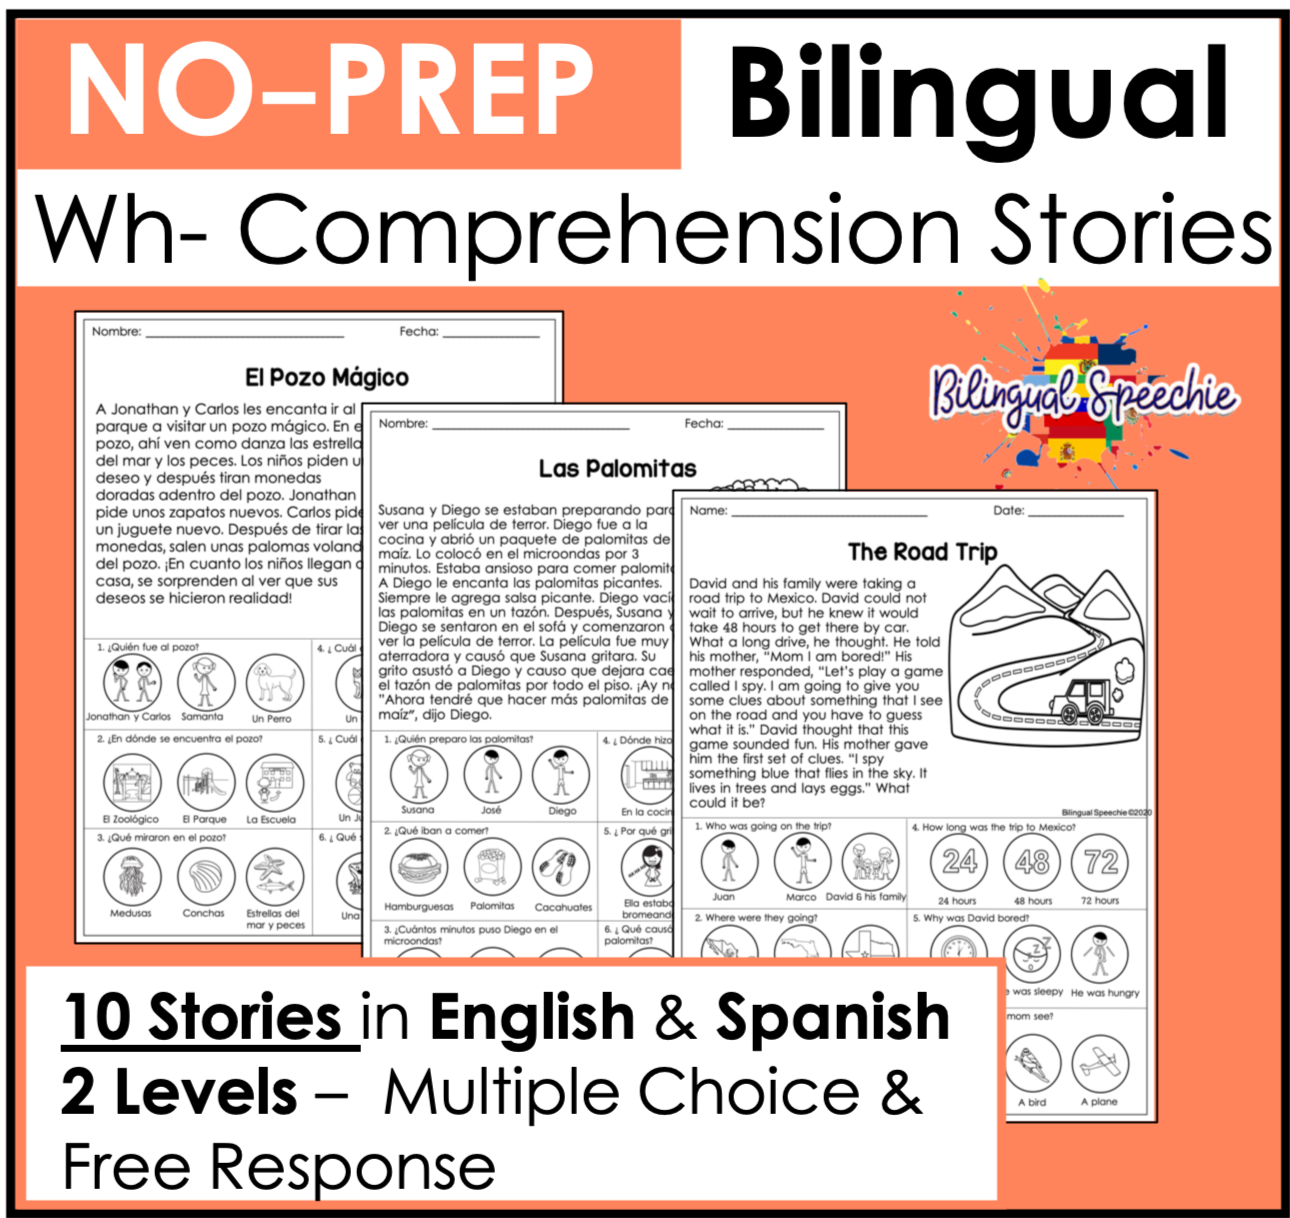 Bilingual Wh- Comprehension Stories | English & Spanish